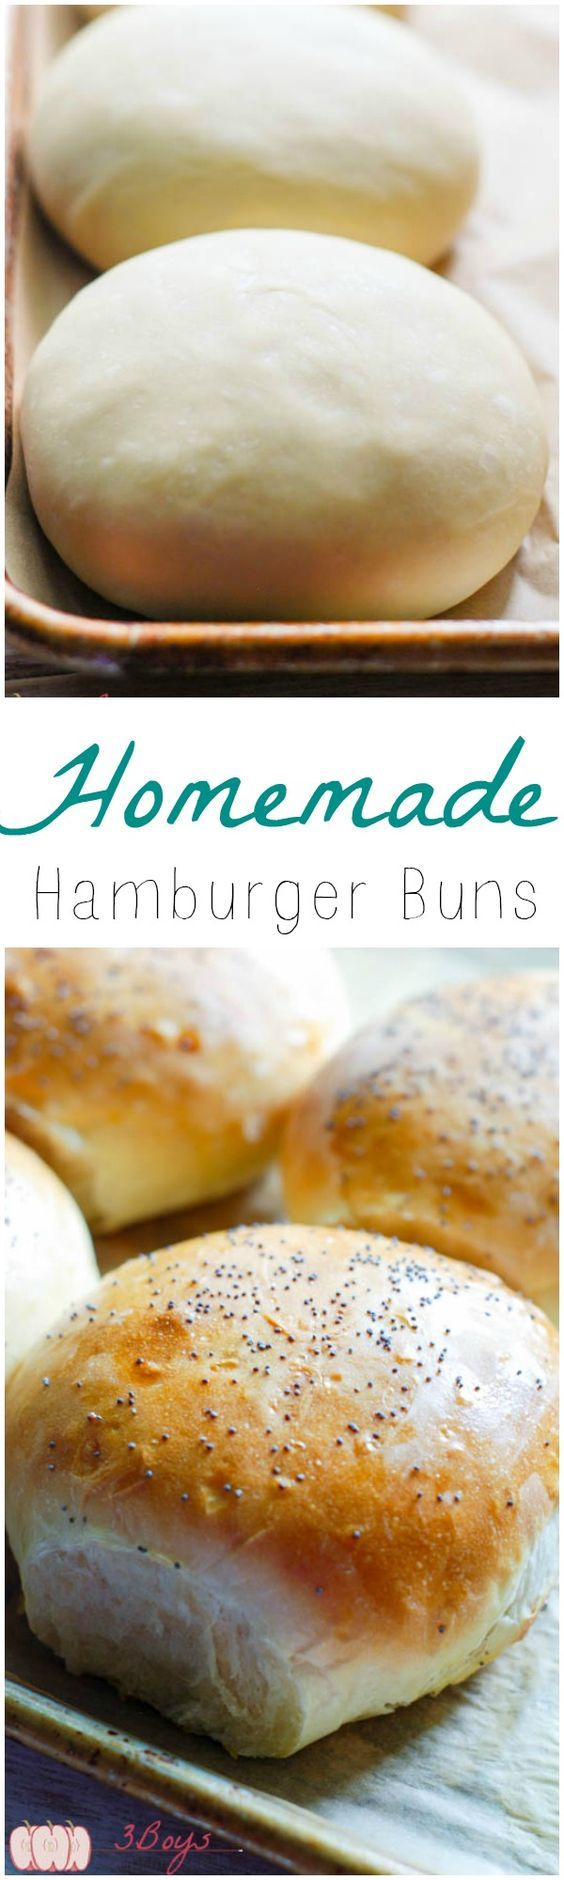 ... homemade hamburgers hamburgers homemade hamburger buns hamburger buns